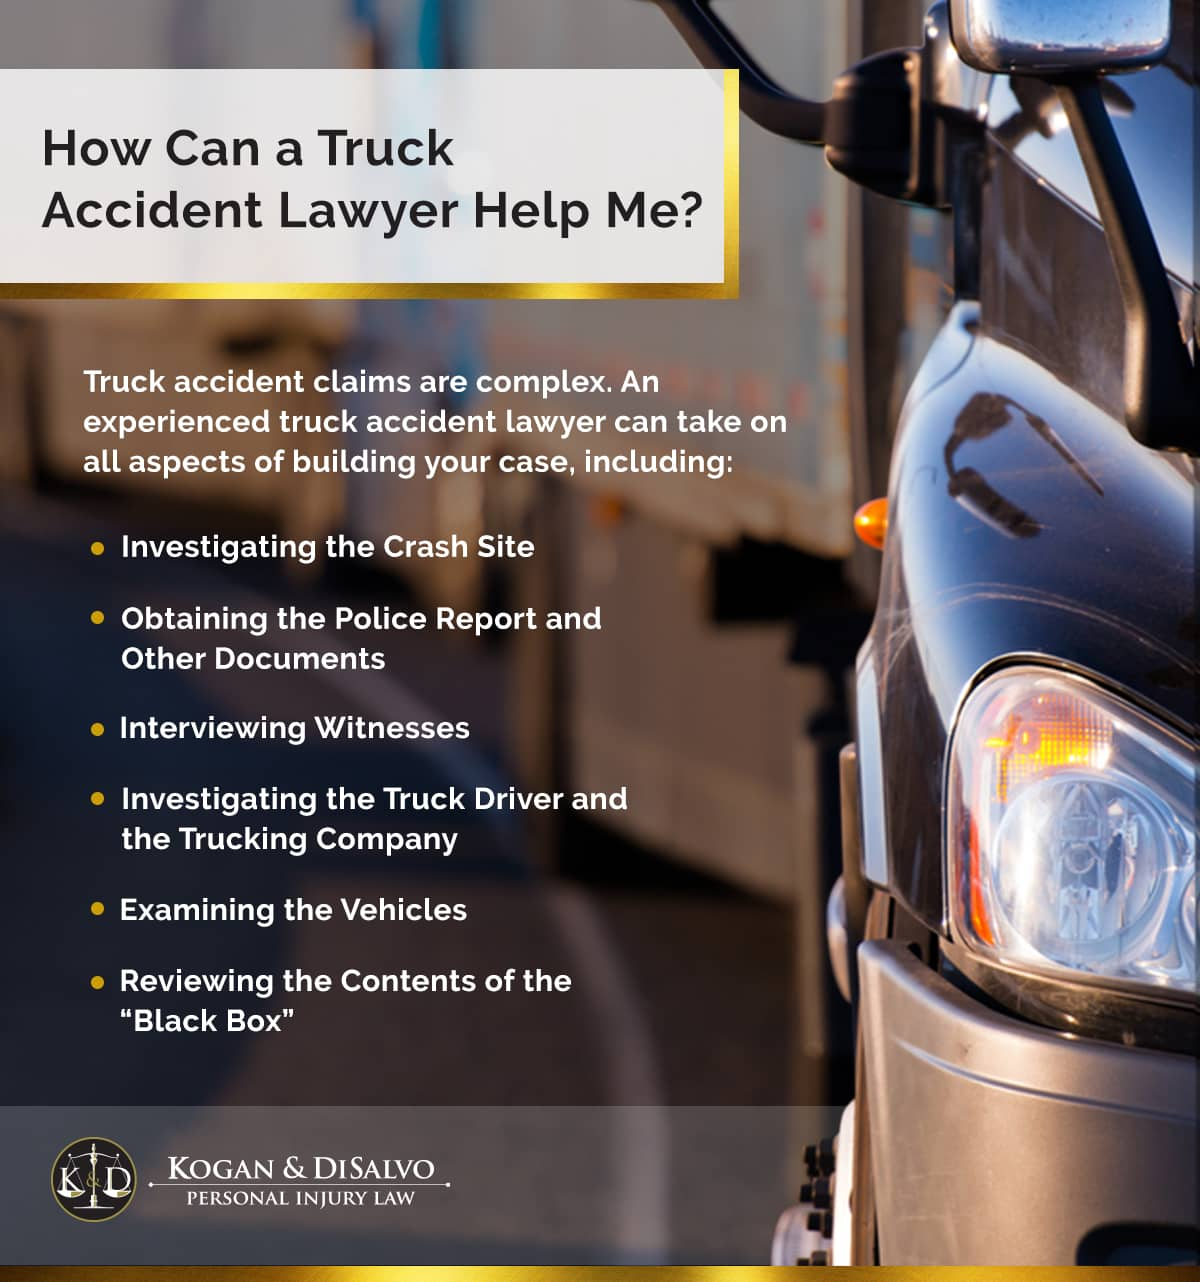 How Can a Truck Accident Lawyer Help Me?